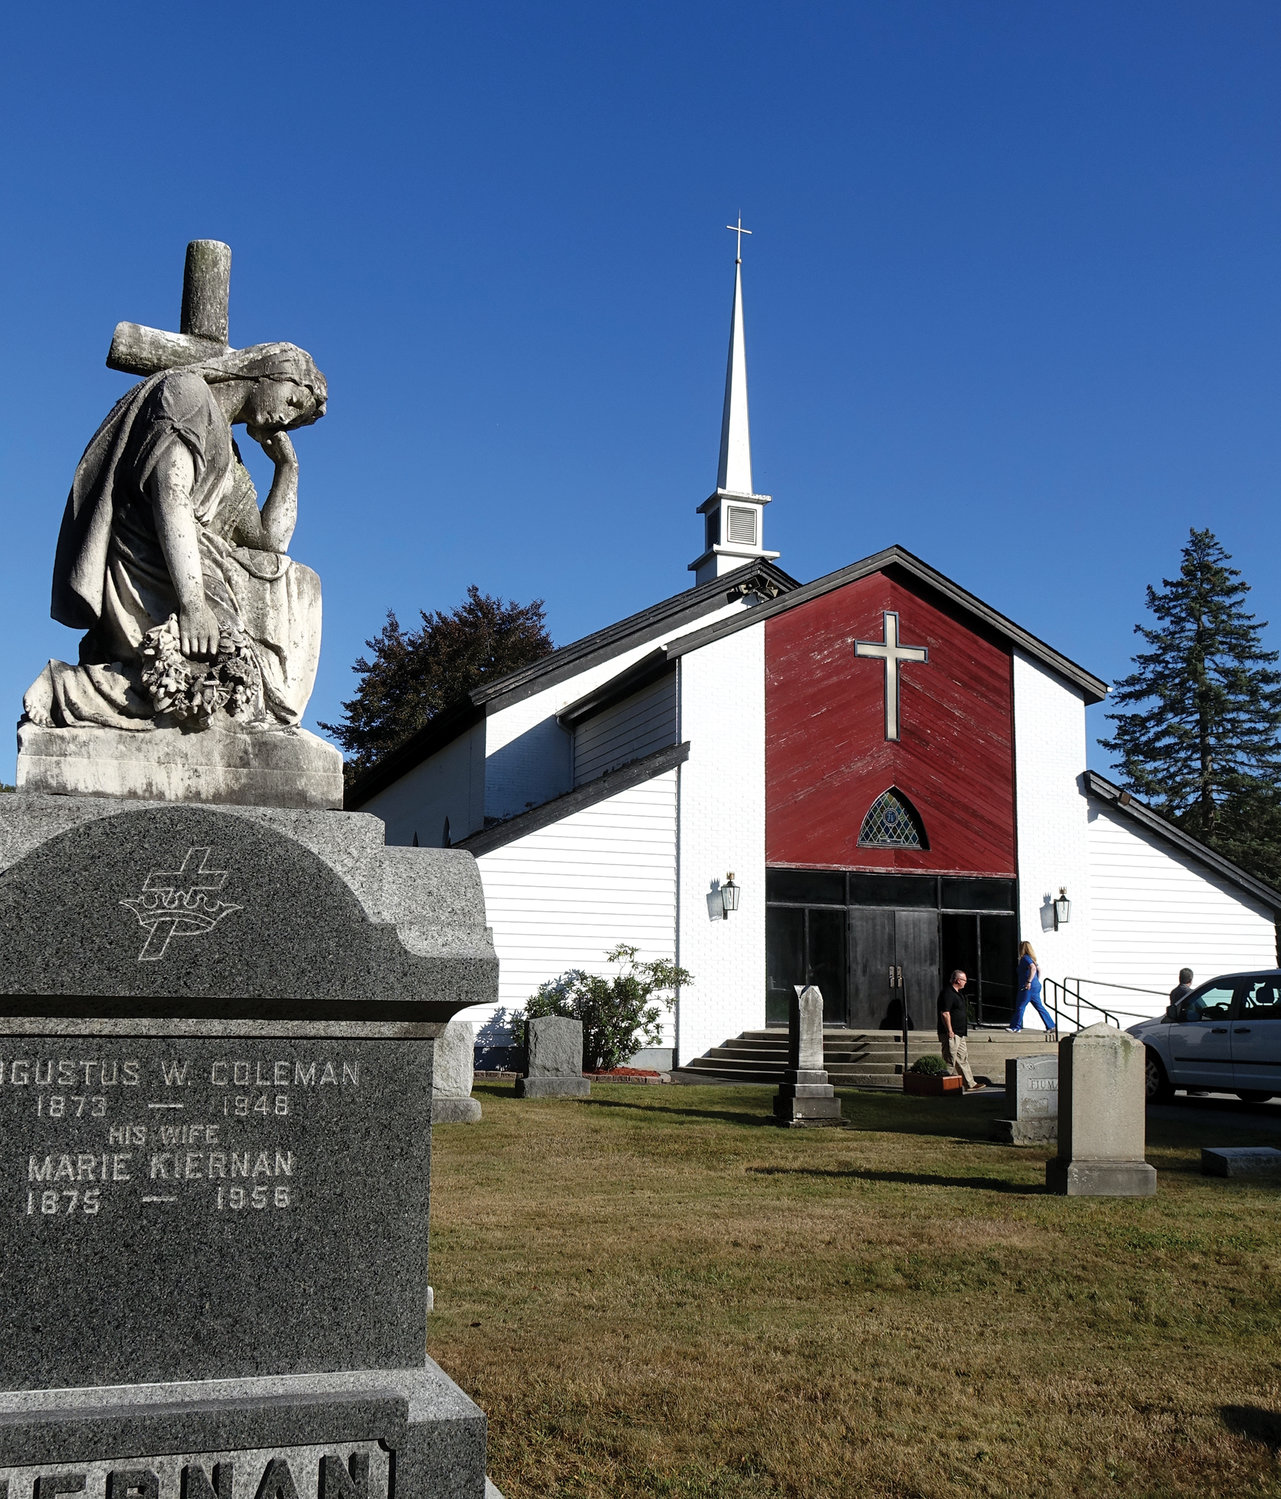 Holy Name of Jesus, which was founded in 1866 and served as a mission church until 1969, is located in the rural village of Otisville.